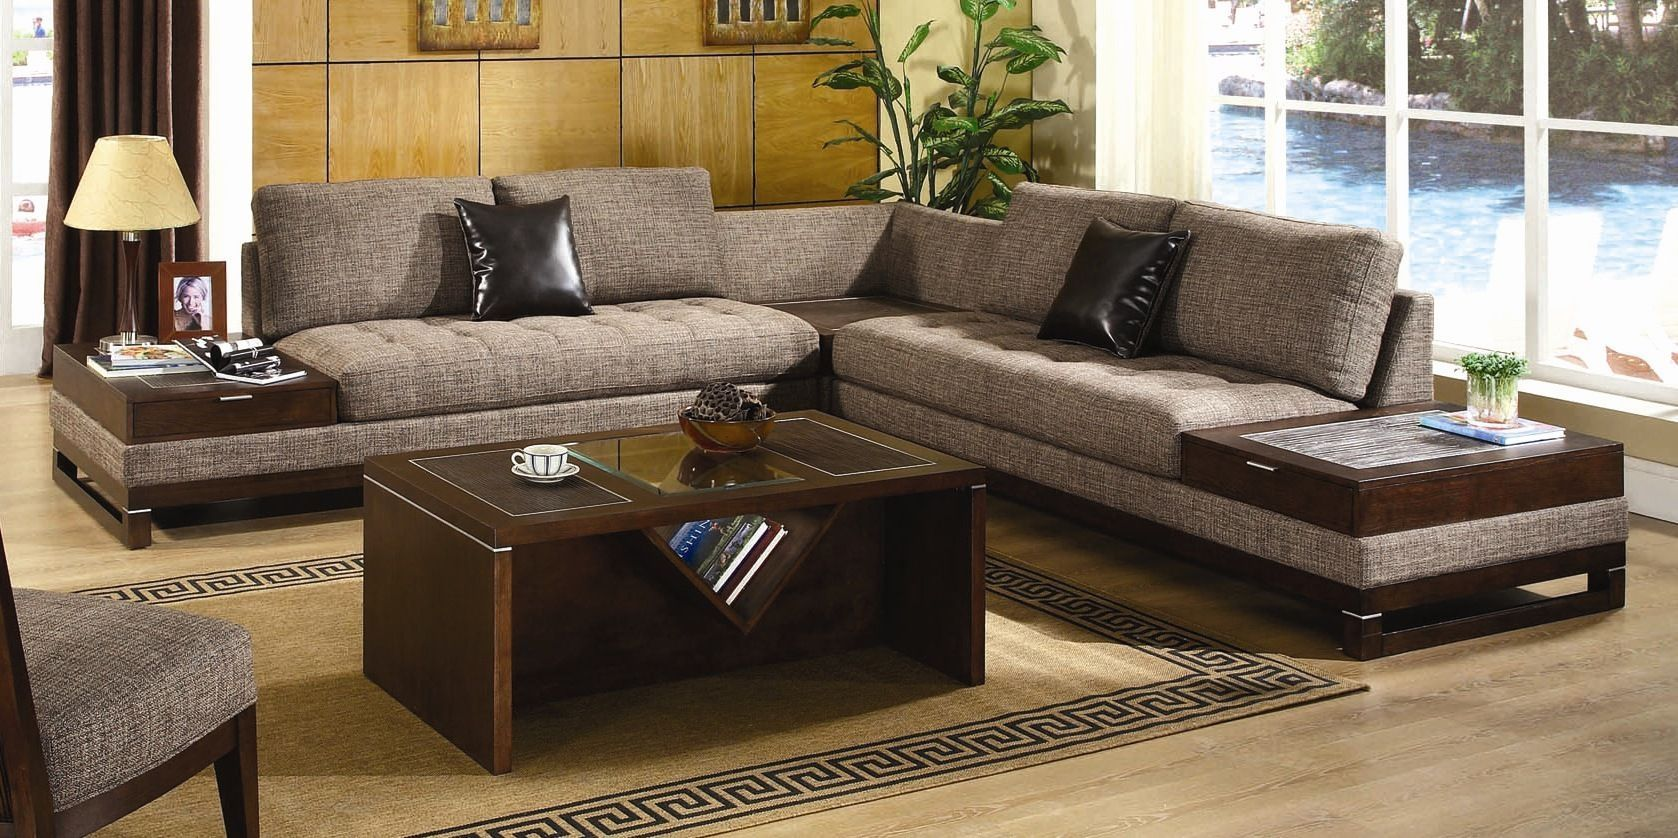 Inexpensive Living Room Sets In 2019 Rustic Living Room